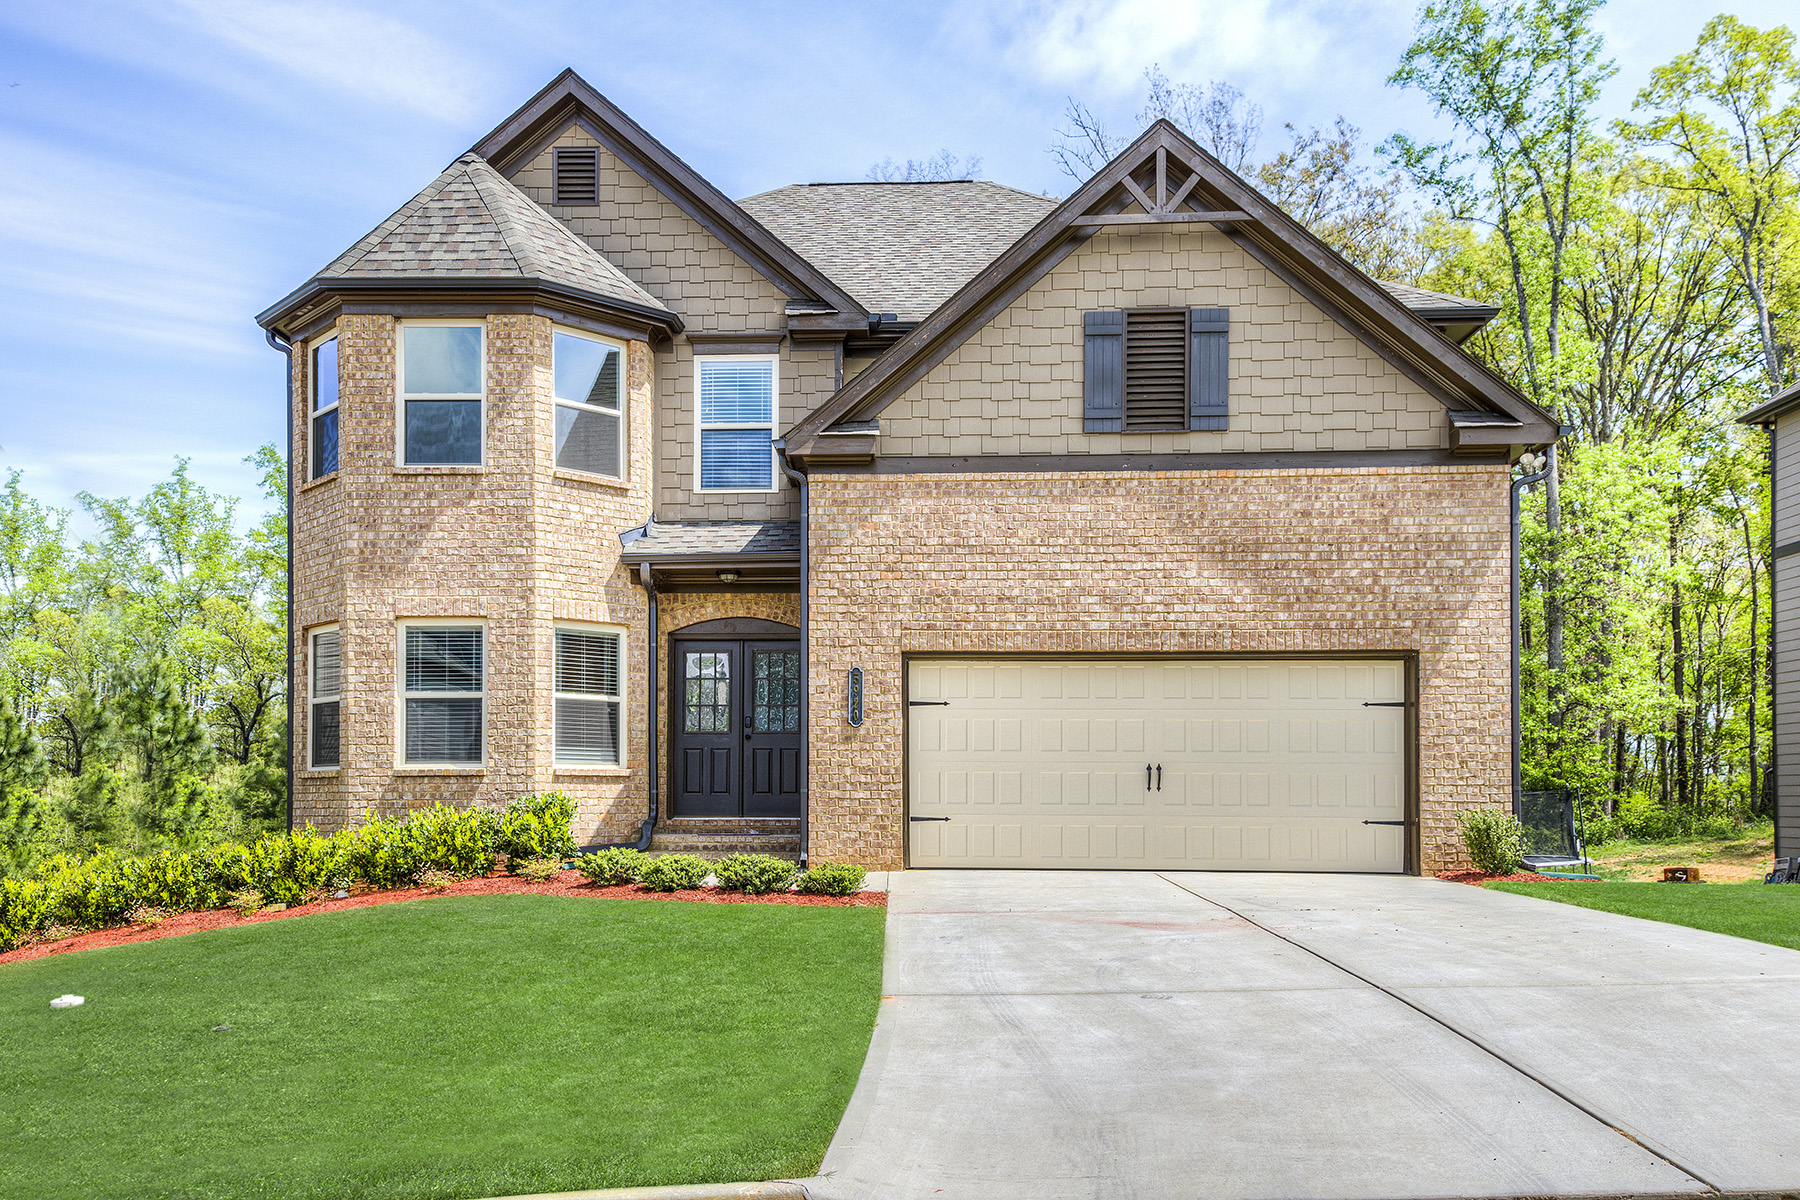 Single Family Homes for Sale at An Entertainer's Dream Moments From Lake Lanier 5920 Park Bay Court Flowery Branch, Georgia 30542 United States